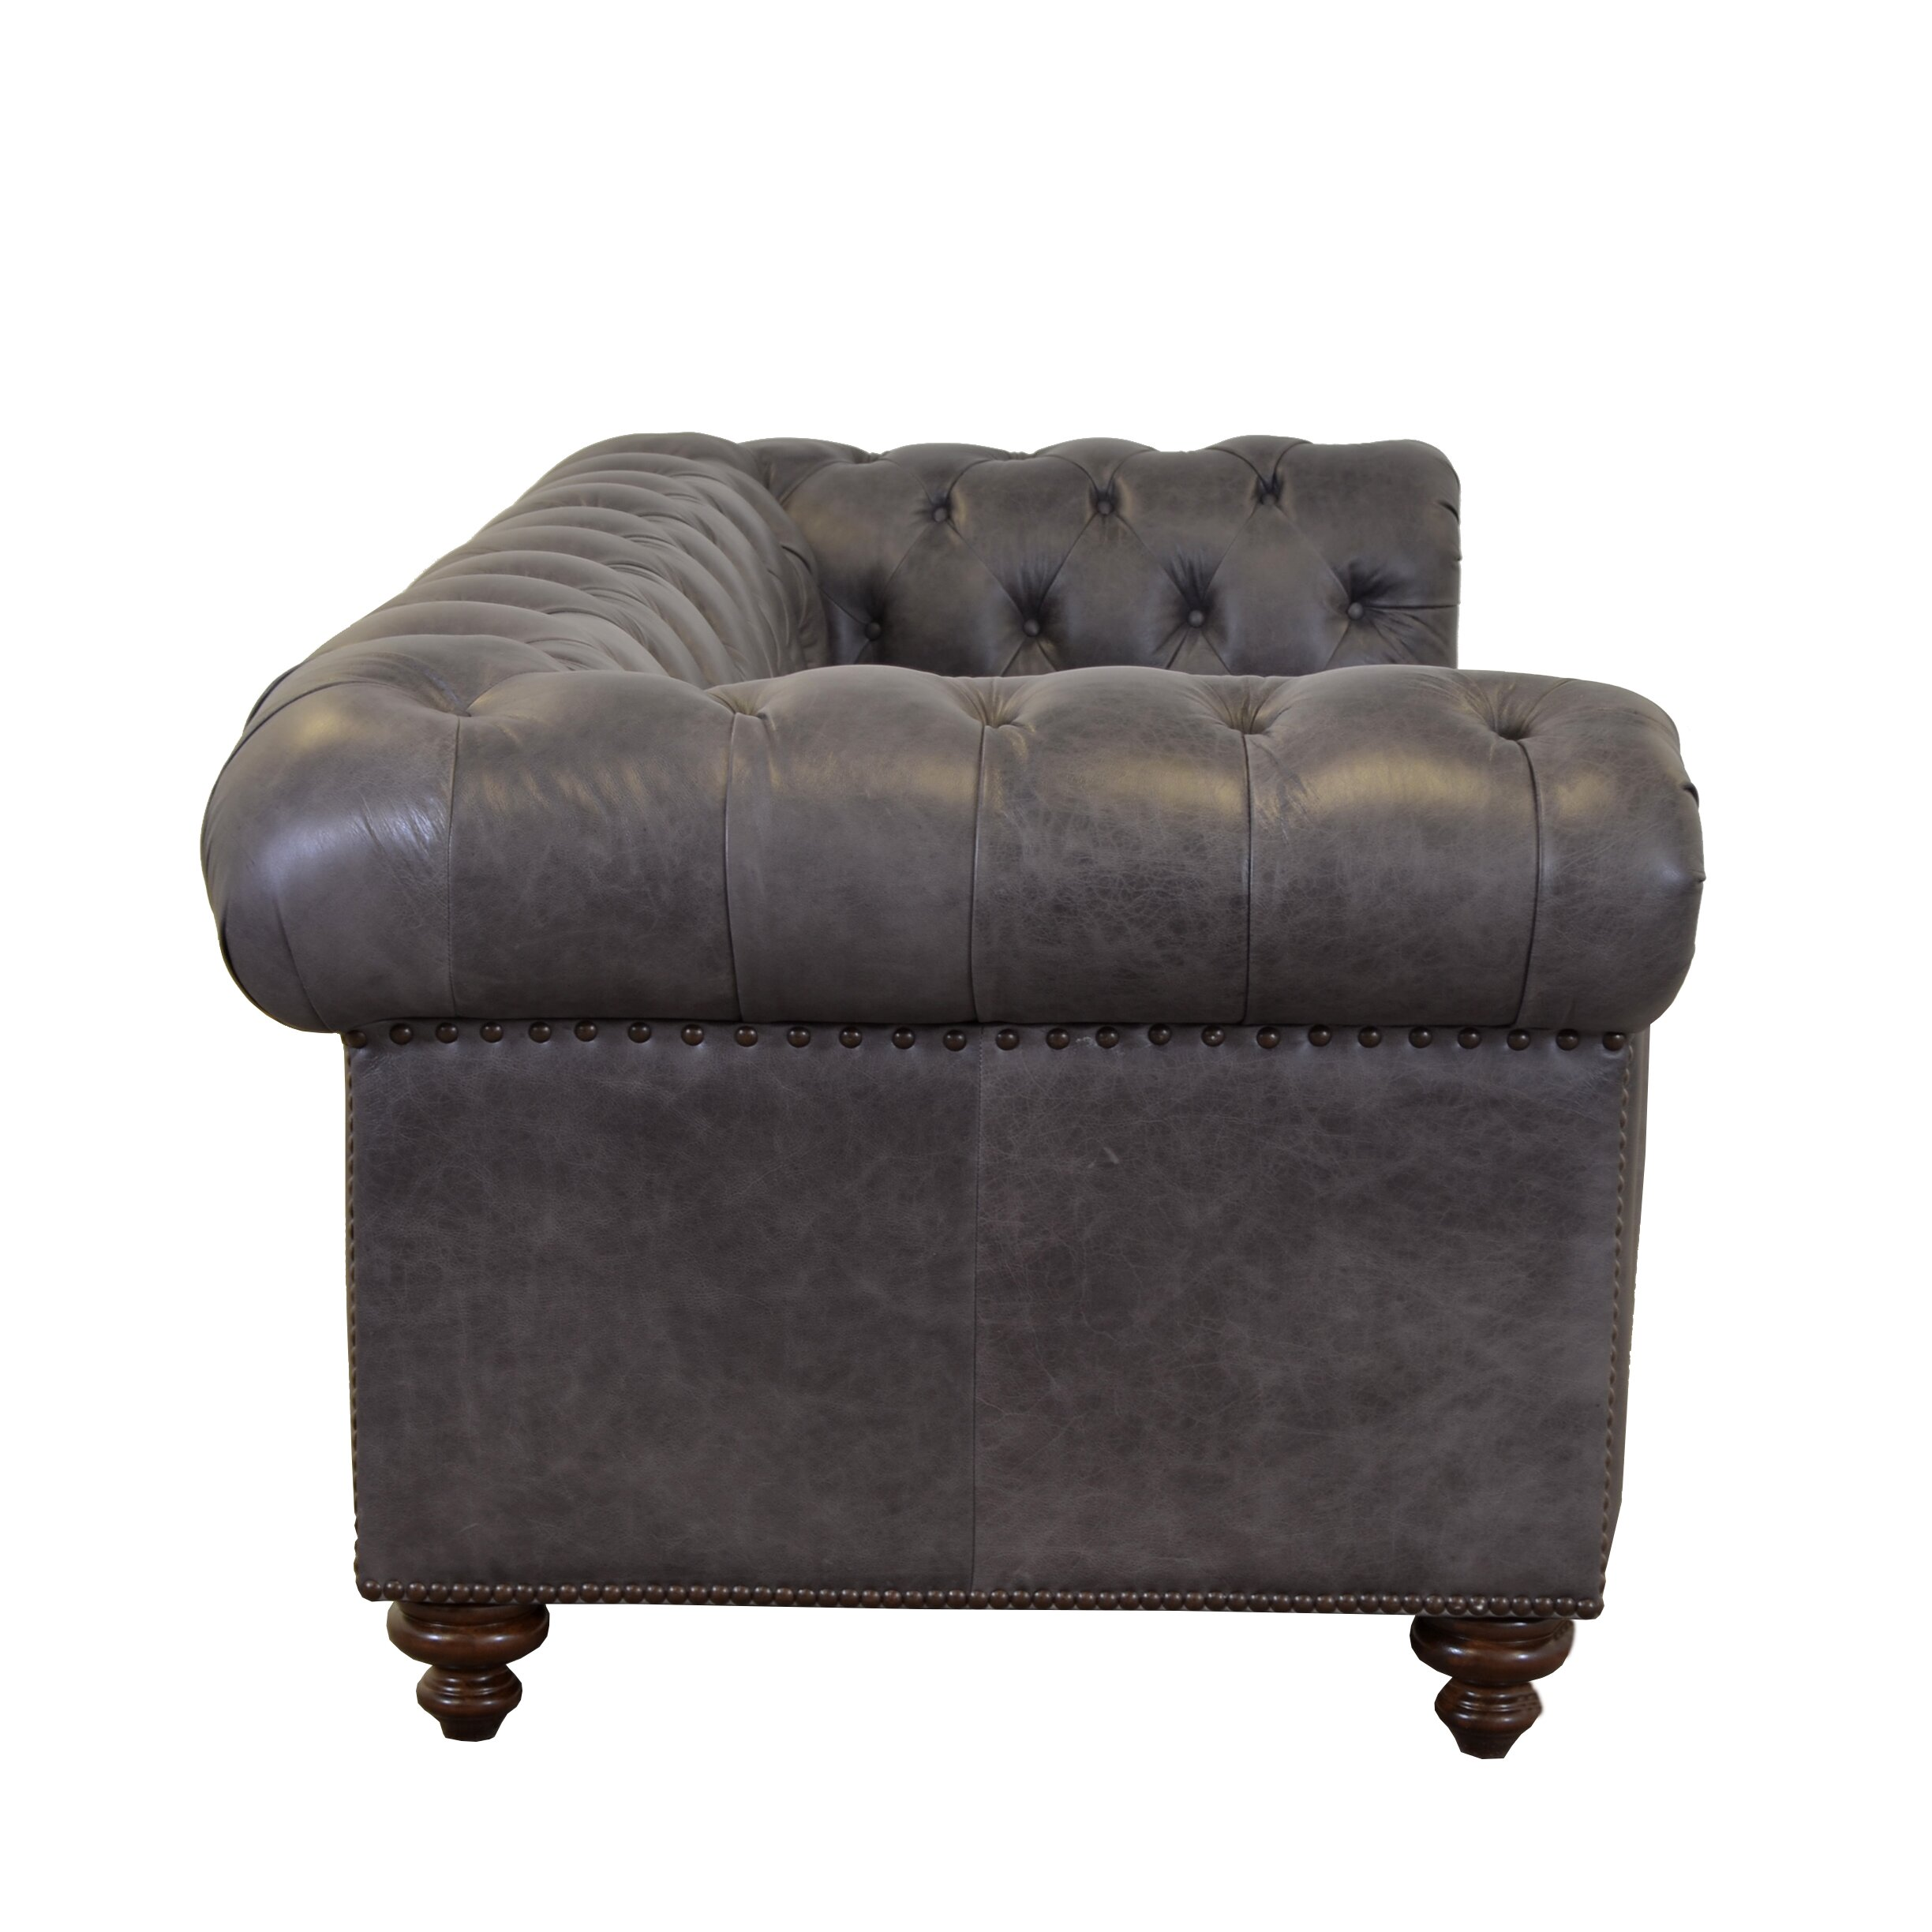 Westland And Birch Newbury Genuine Top Grain Leather Tufted Loveseat